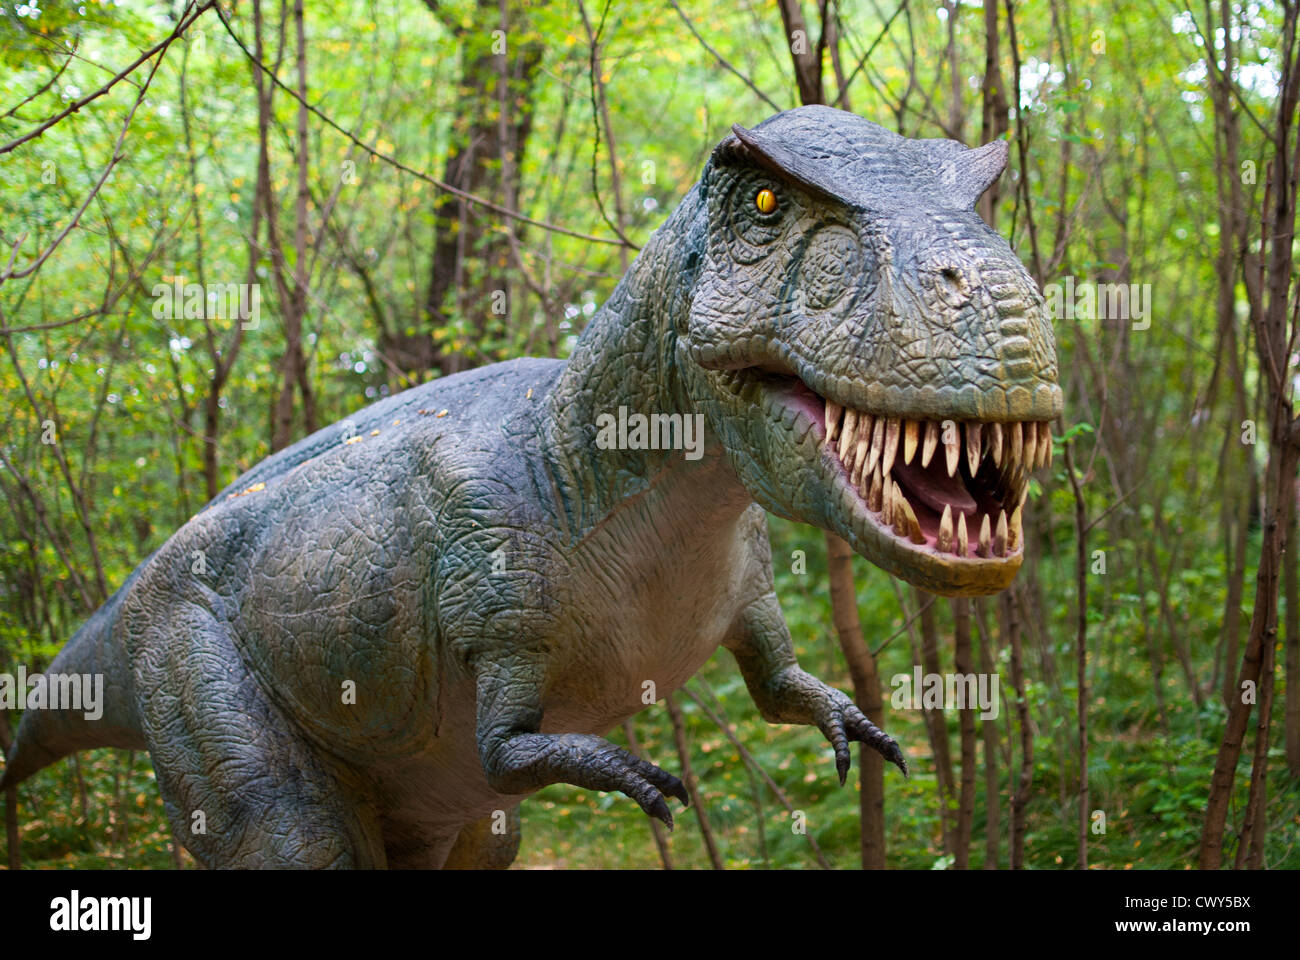 Tyrannosaurus - Dinosaur in the dark forest - Stock Image